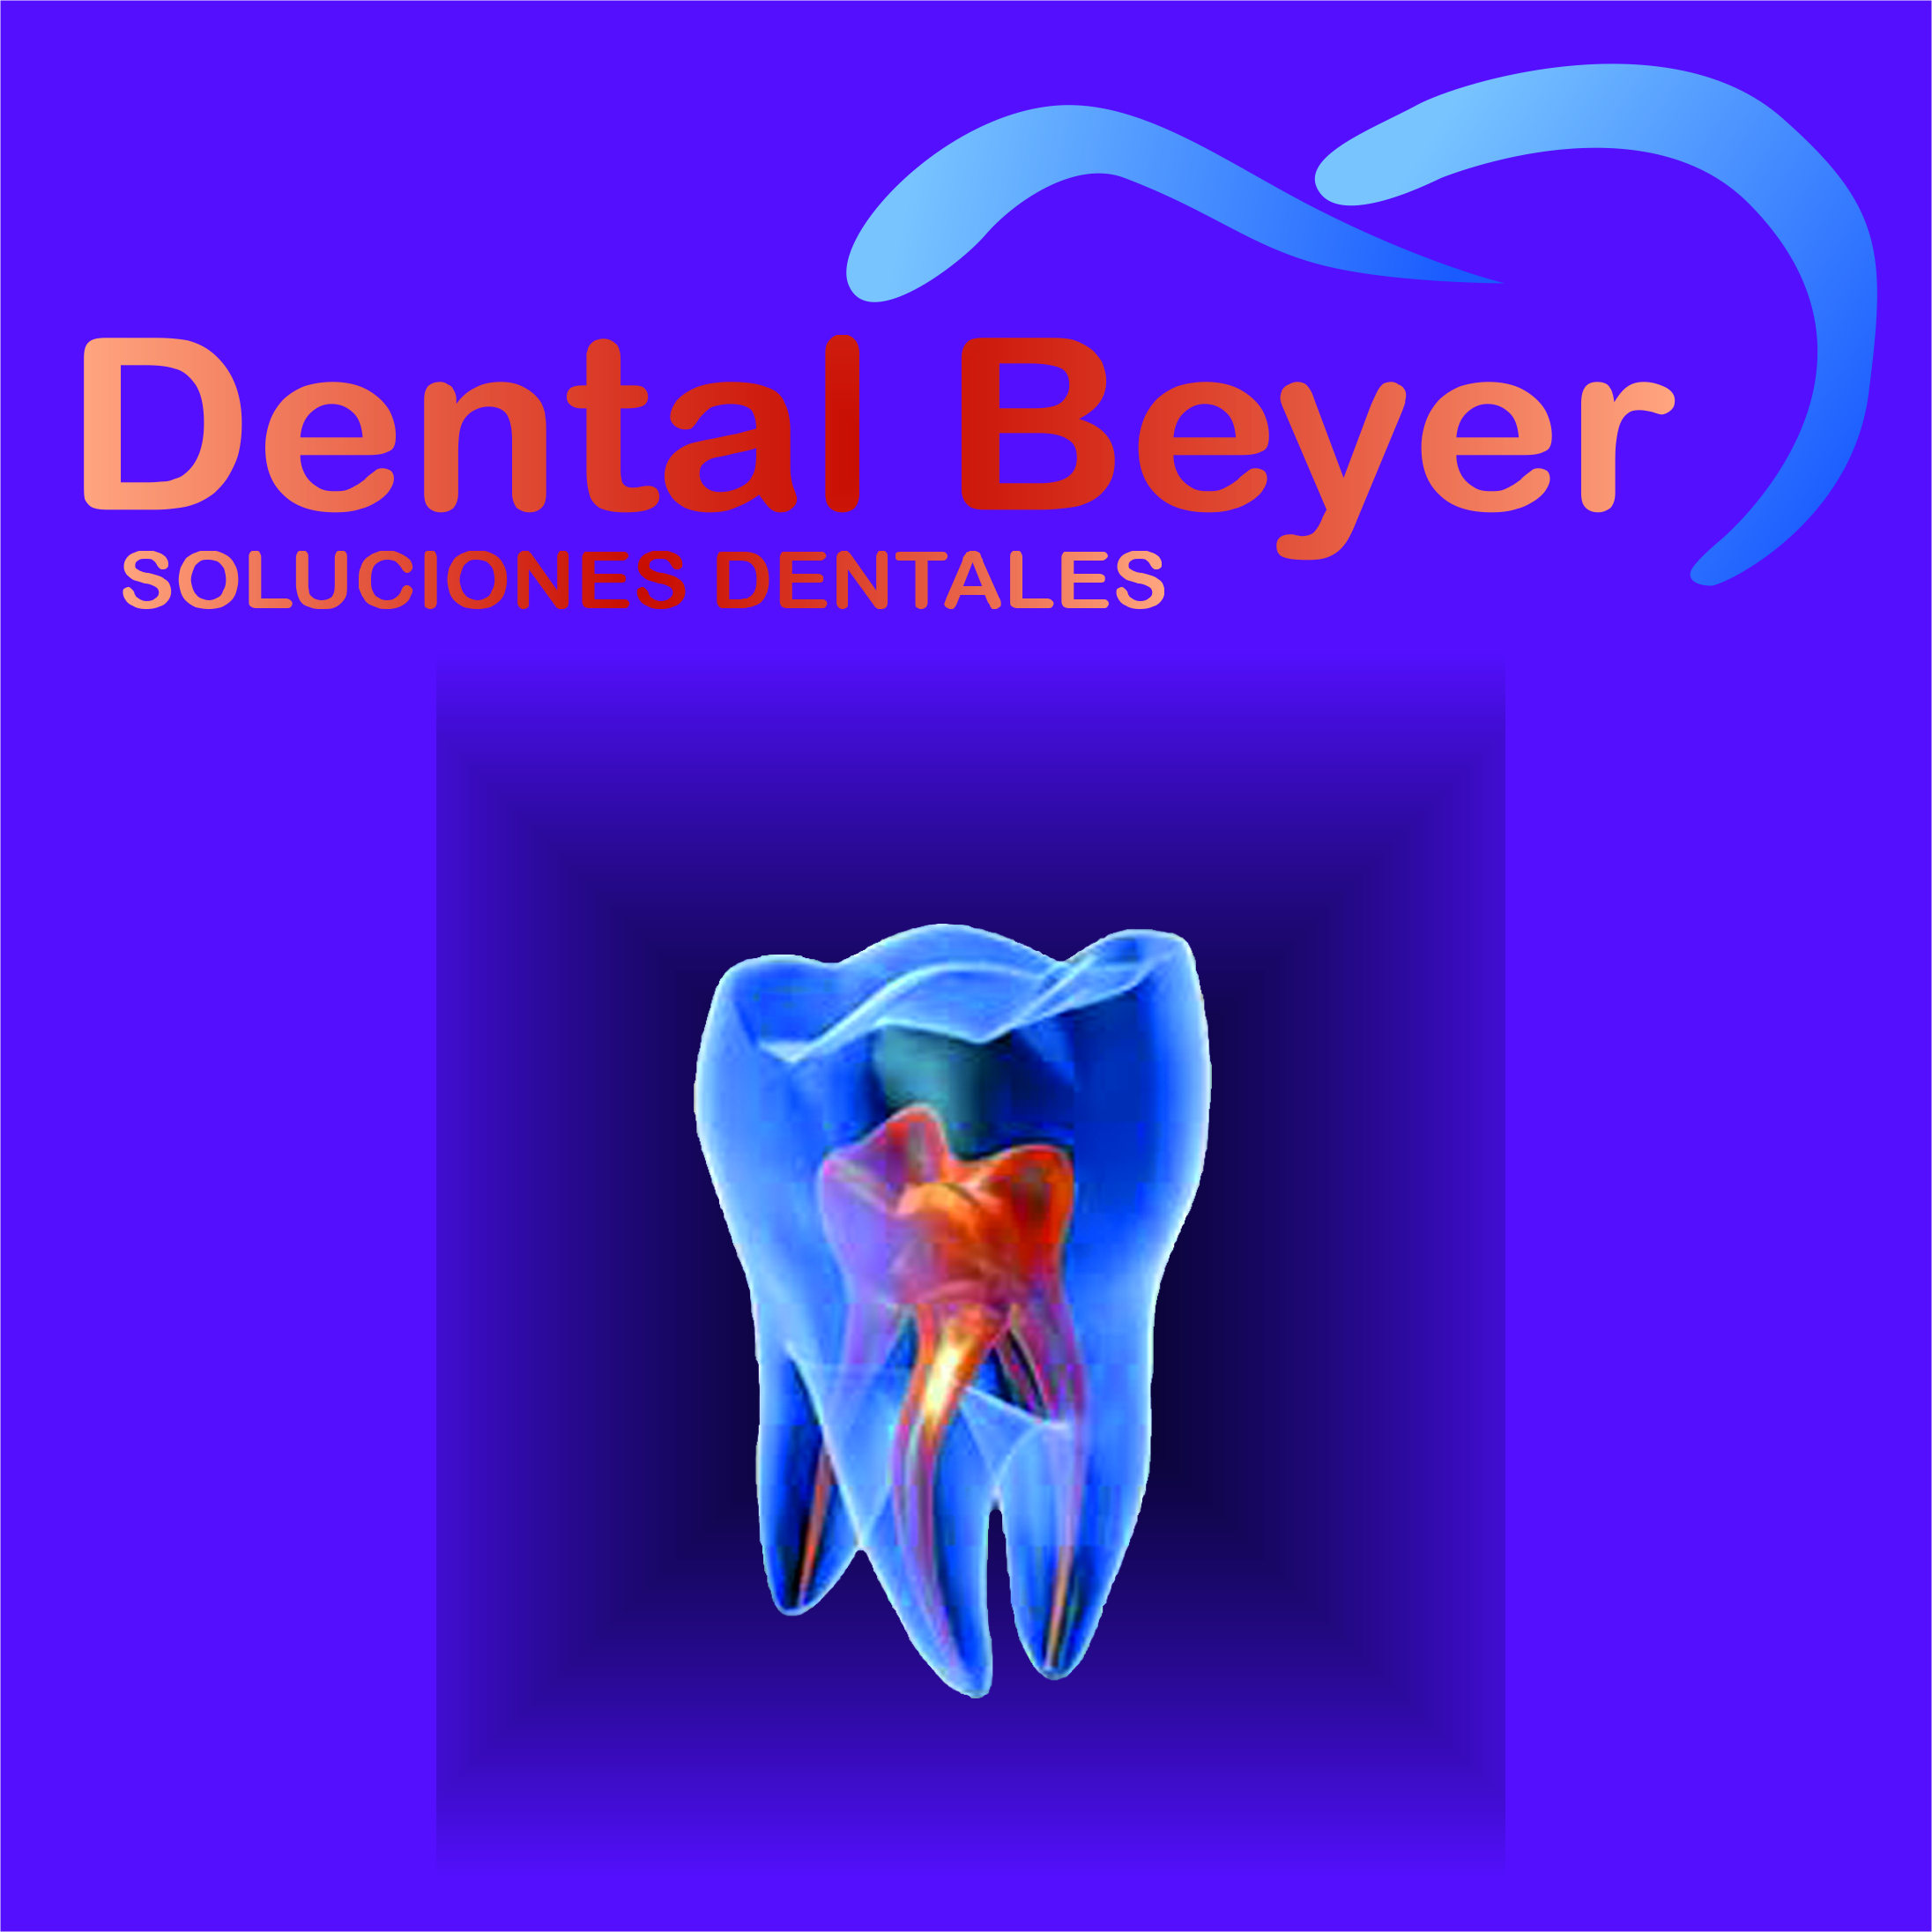 Clinica Dental Beyer